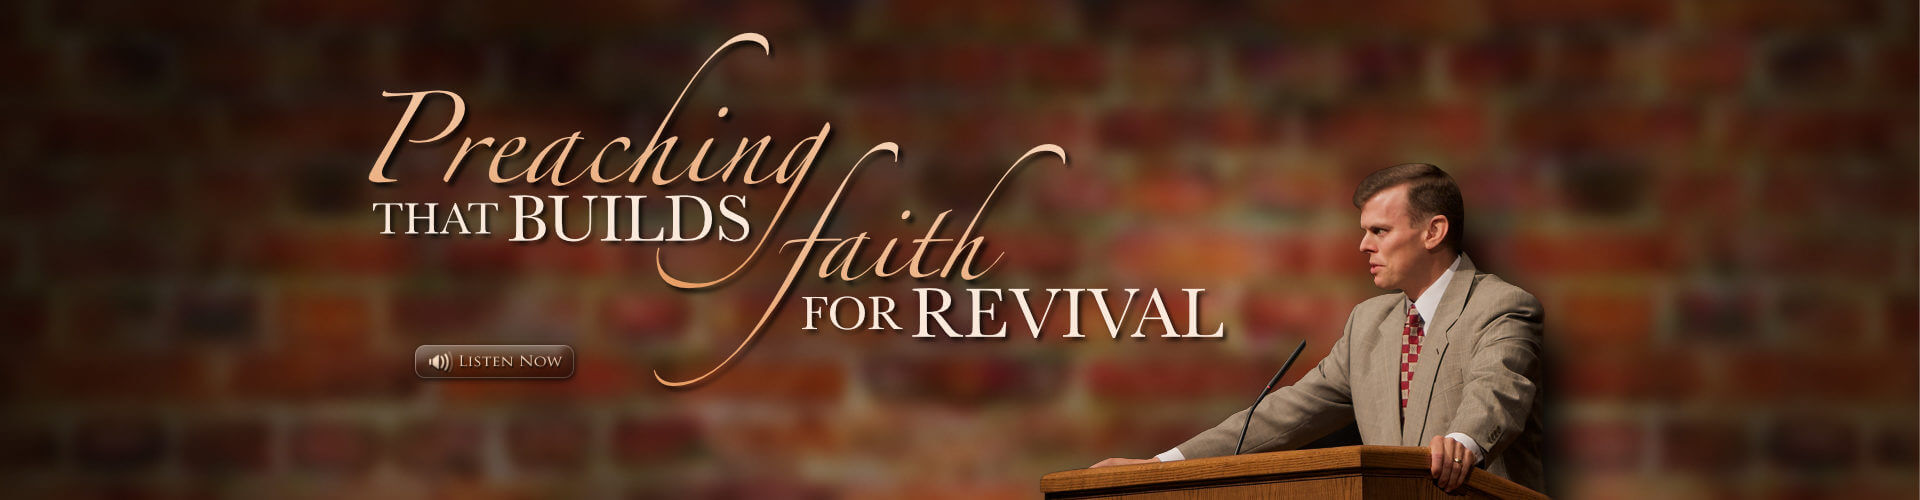 Preaching that Builds Faith For Revival